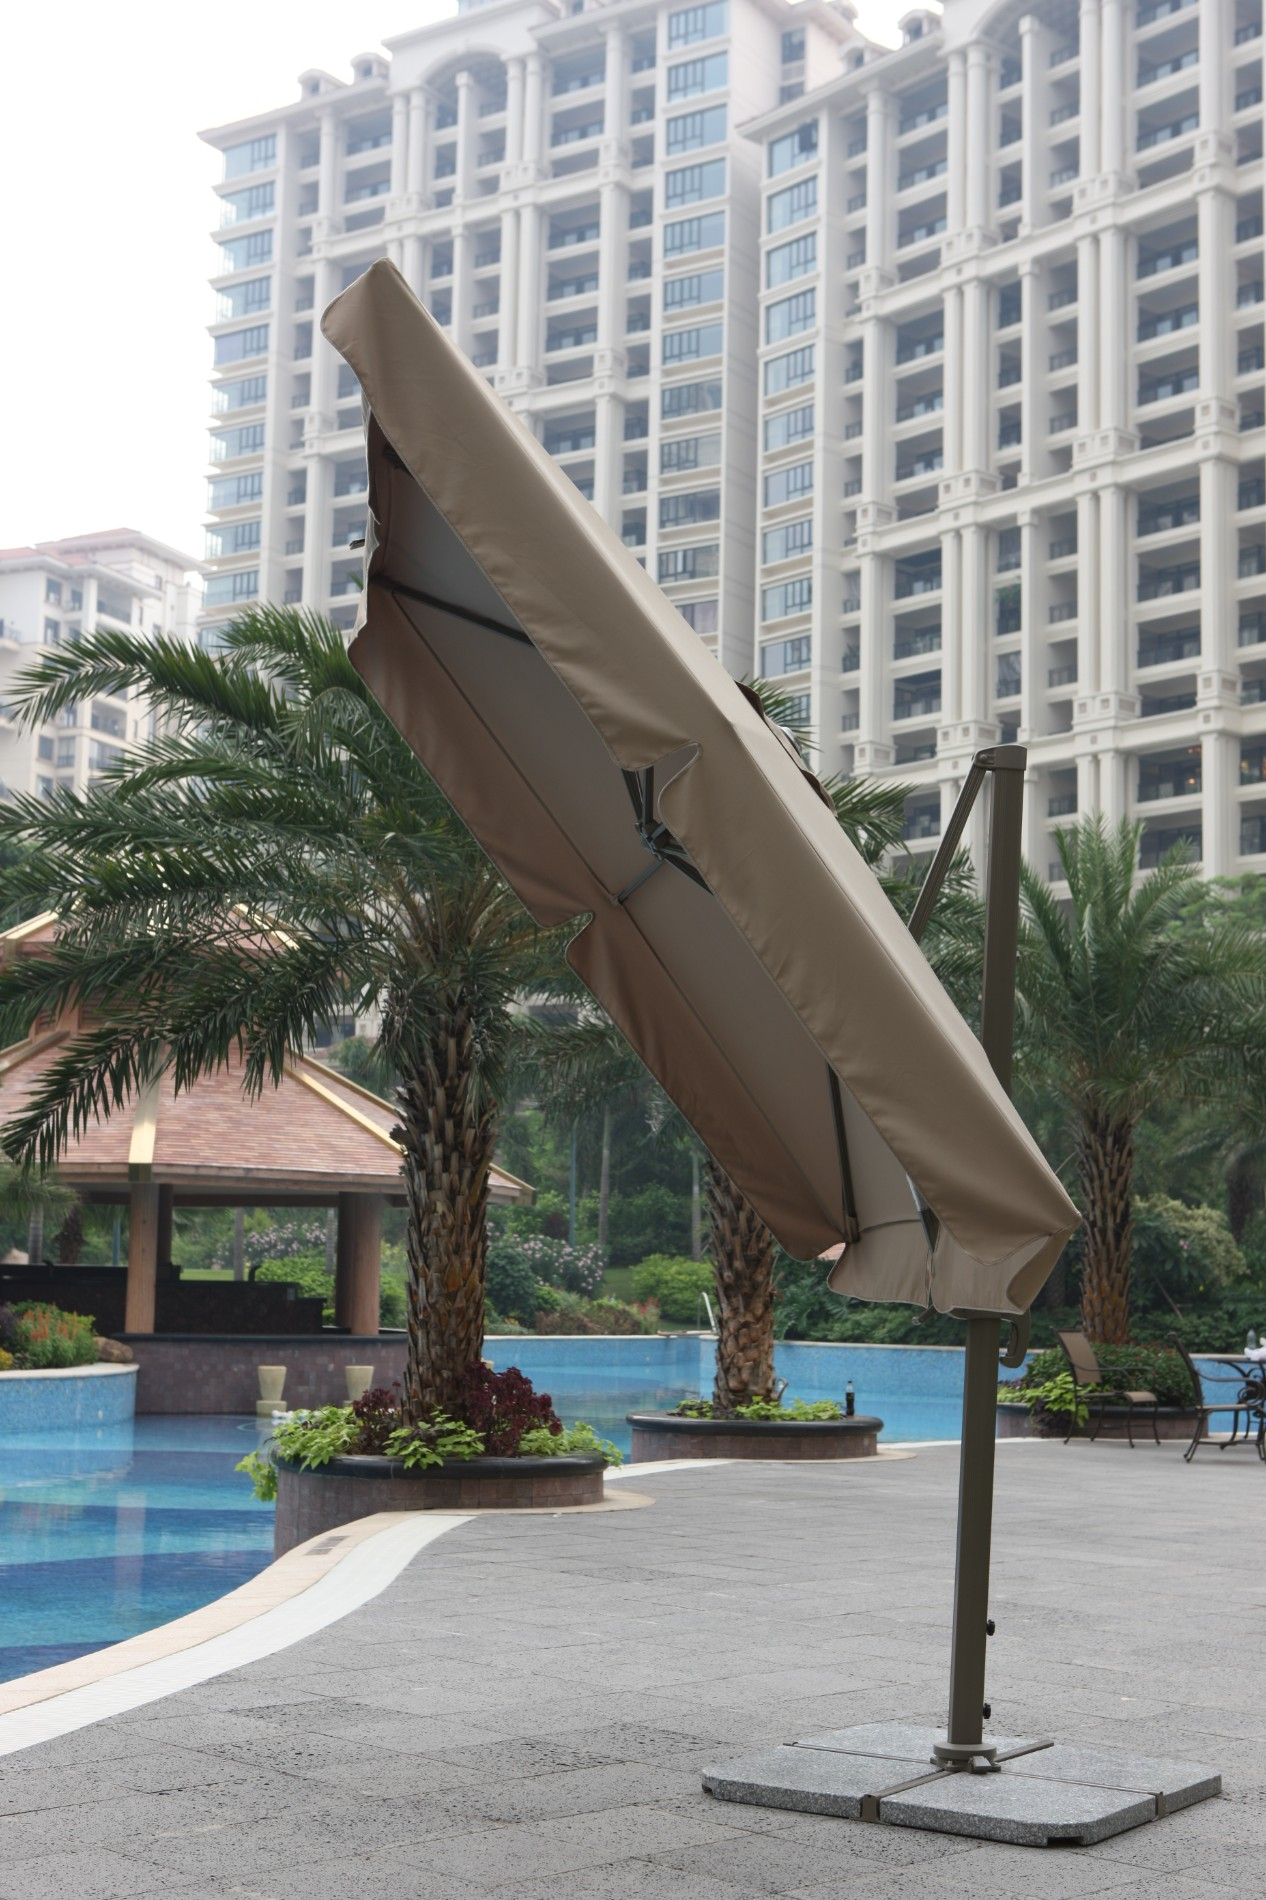 Outdoor Parasol With Aluminium Pole With Cross Base Manufacturers, Outdoor Parasol With Aluminium Pole With Cross Base Factory, Supply Outdoor Parasol With Aluminium Pole With Cross Base